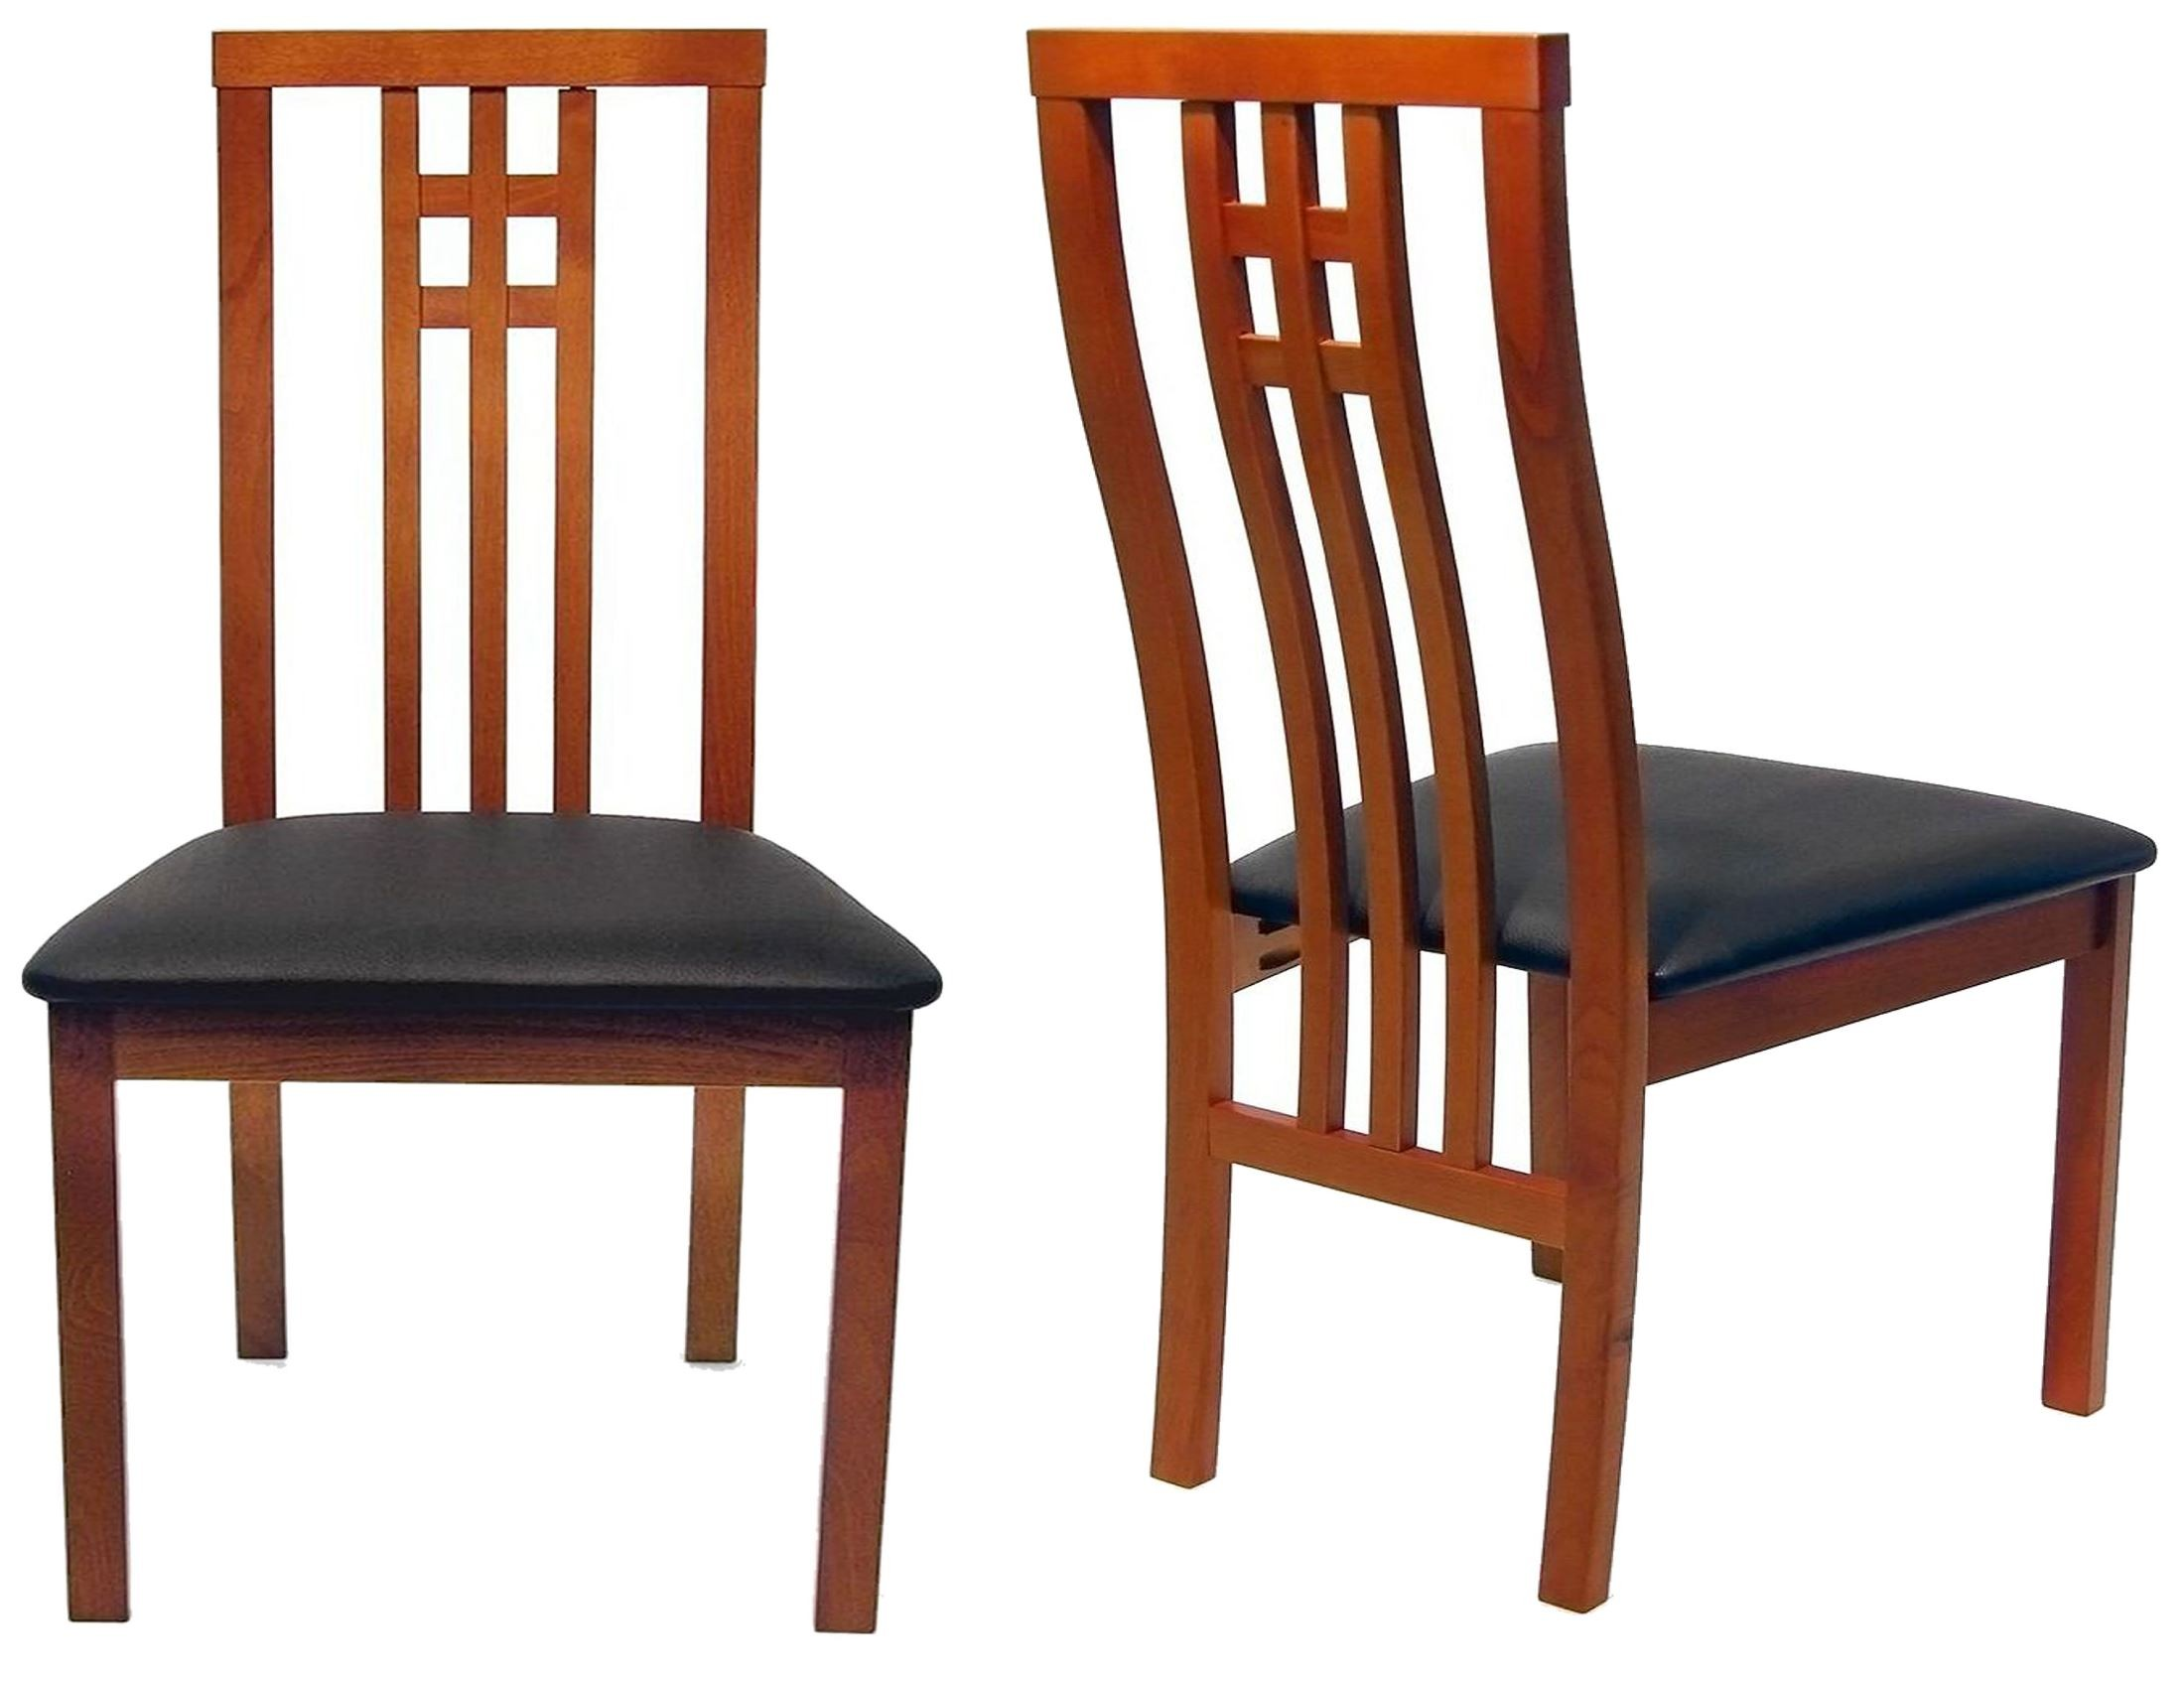 Beechwood district cherry dining chair set of 2 from aeon for District 8 furniture